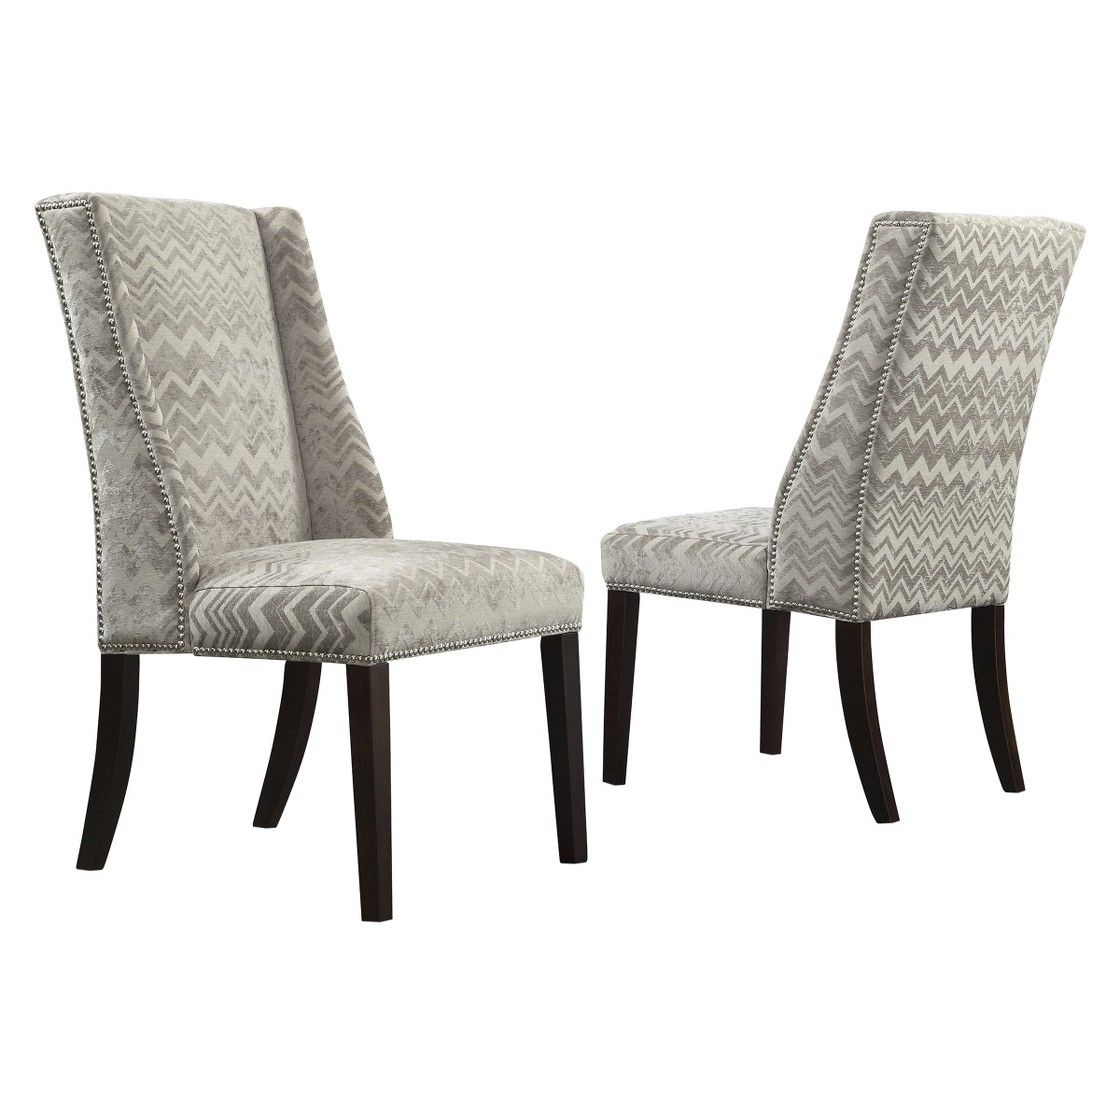 Harlow Wingback Dining Chair With Nailheads Velvety Chevron Set